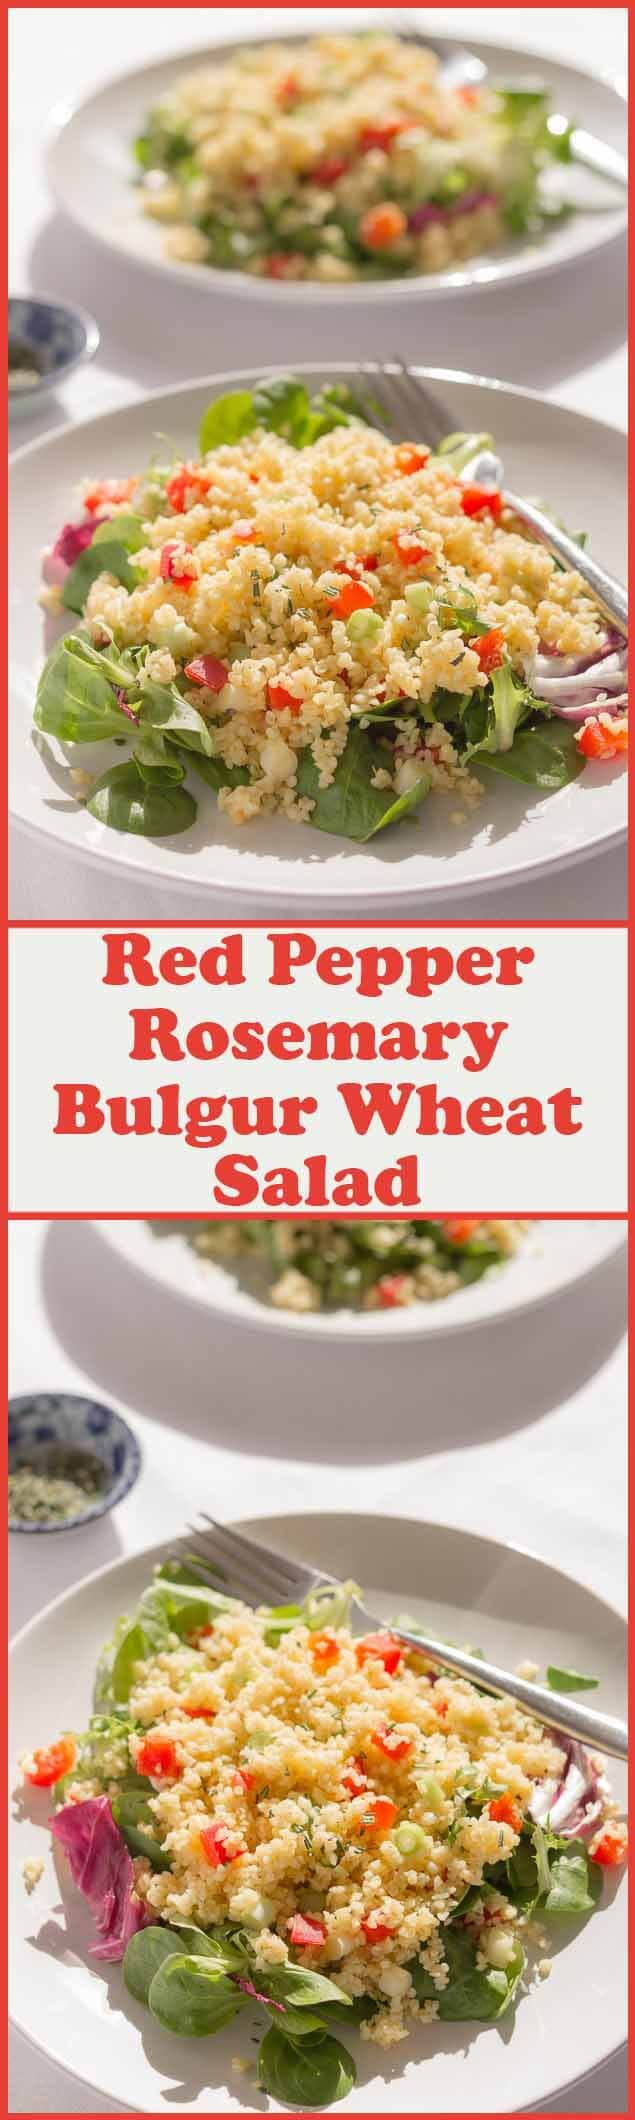 This red pepper and rosemary bulgur wheat salad is just the thing for a simple, quick healthy meal. Delicious hot or cold, it keeps you fuller for longer satisfying your hunger.